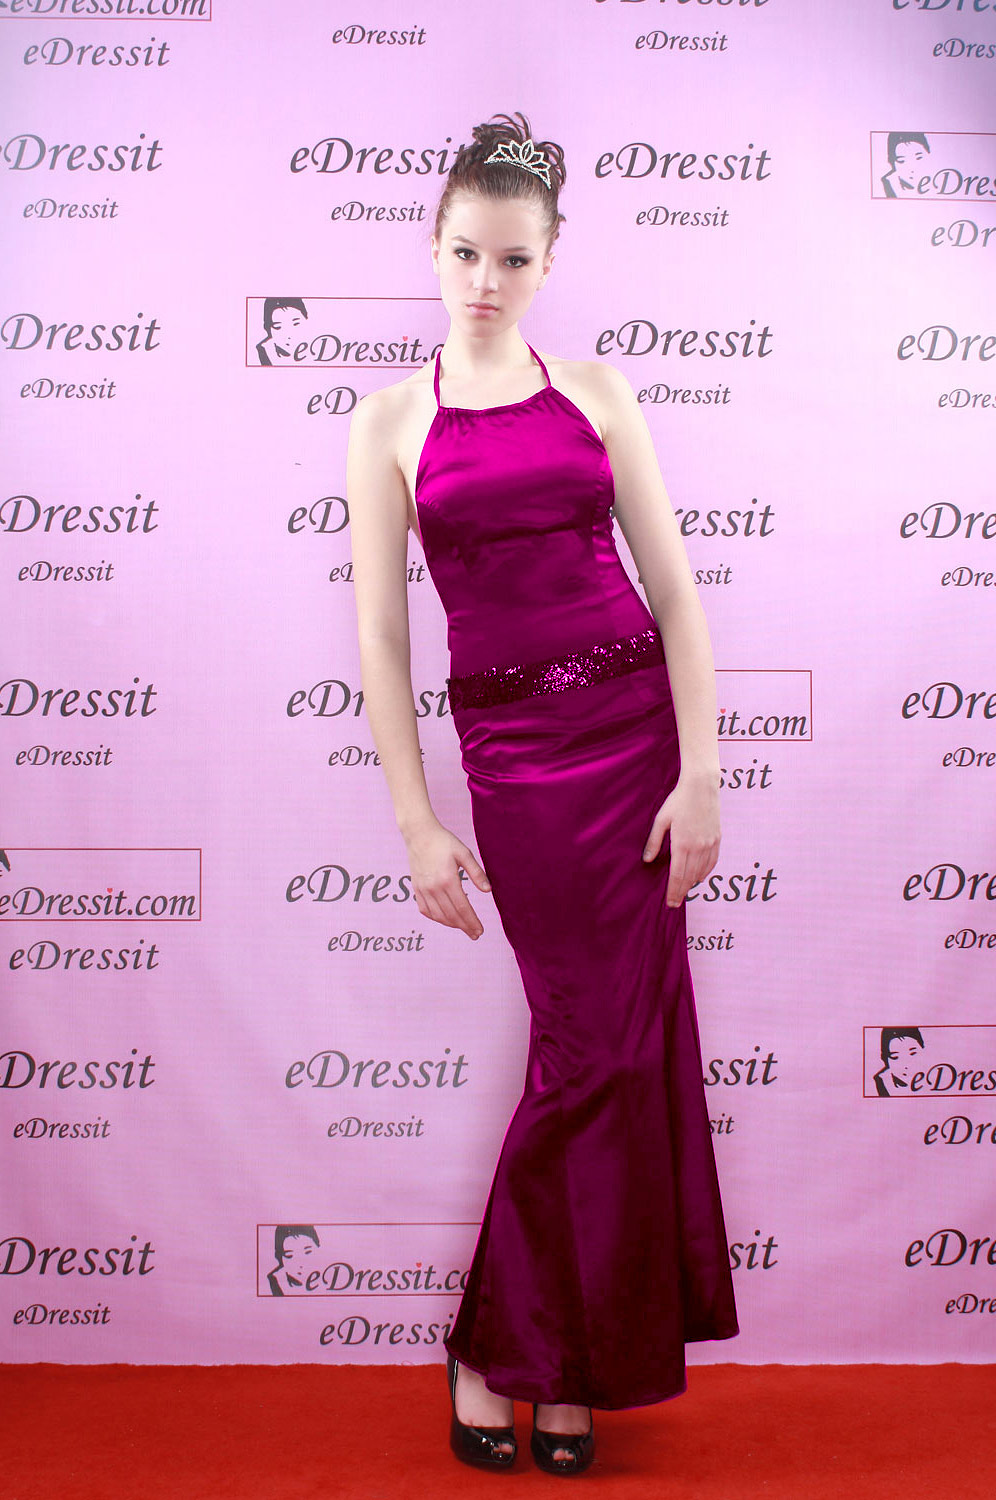 On sale !! eDressit Sexy  Prom Gown Evening Dress (00050300f)